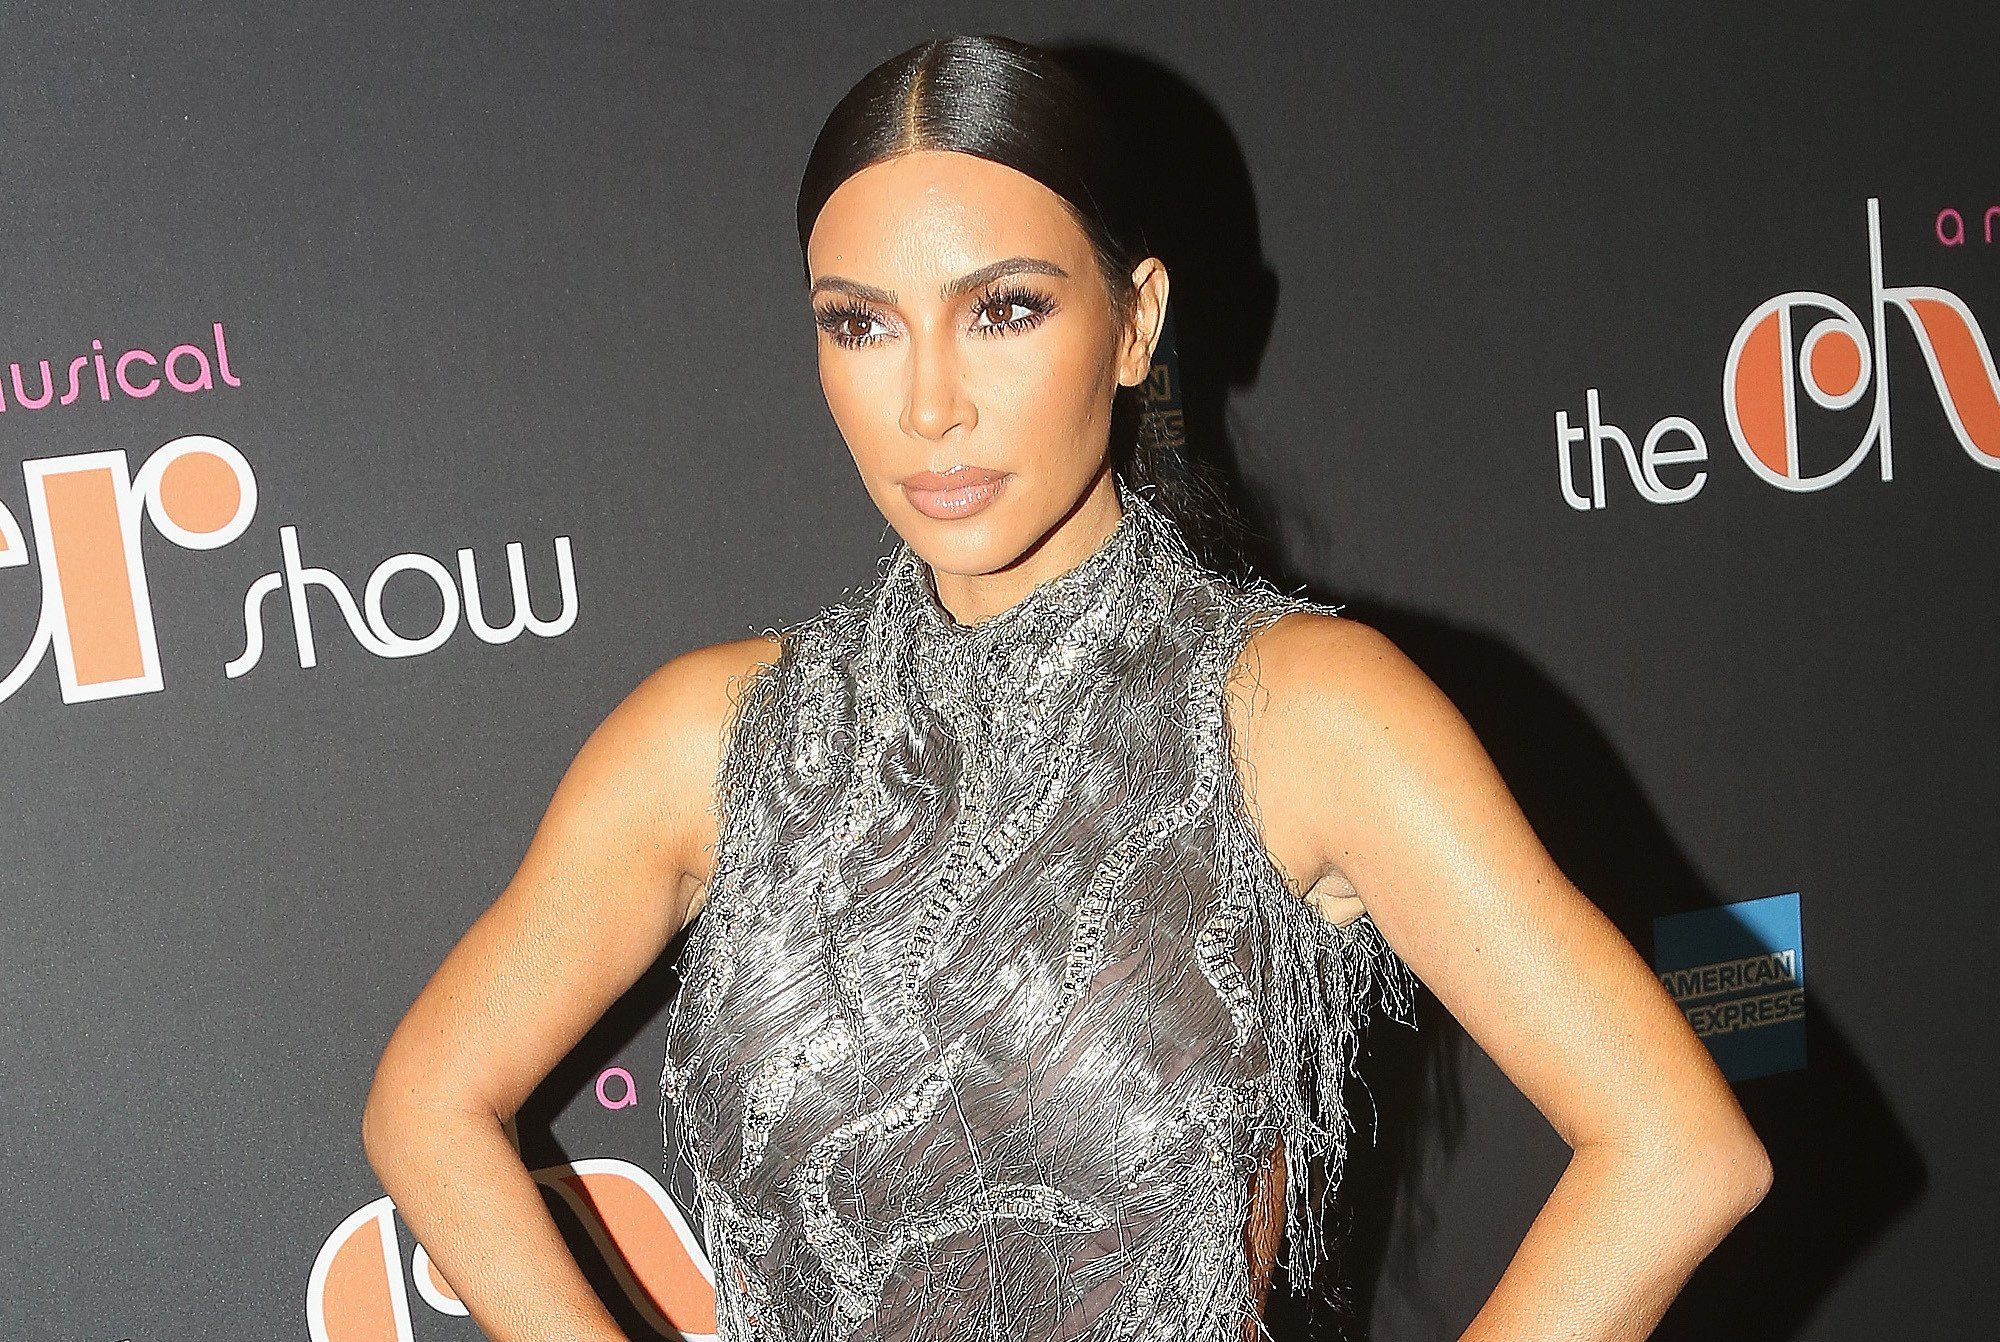 Kim Kardashian fixes her wardrobe malfunction with help from Cher